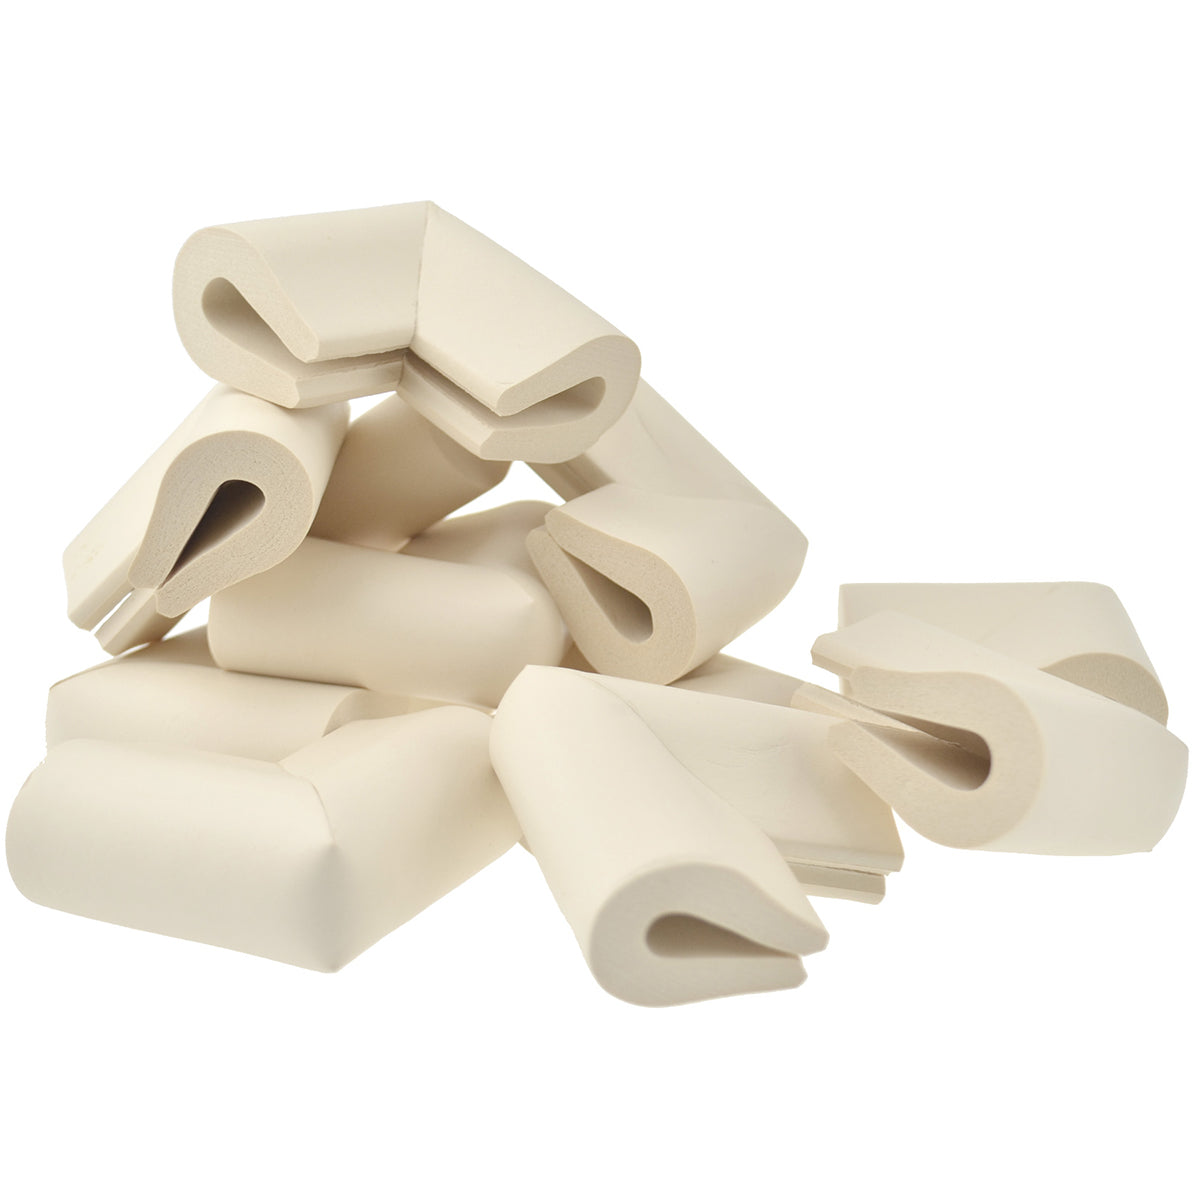 12 pieces randomly placed beige u-shaped foam corner protectors show with a white background.